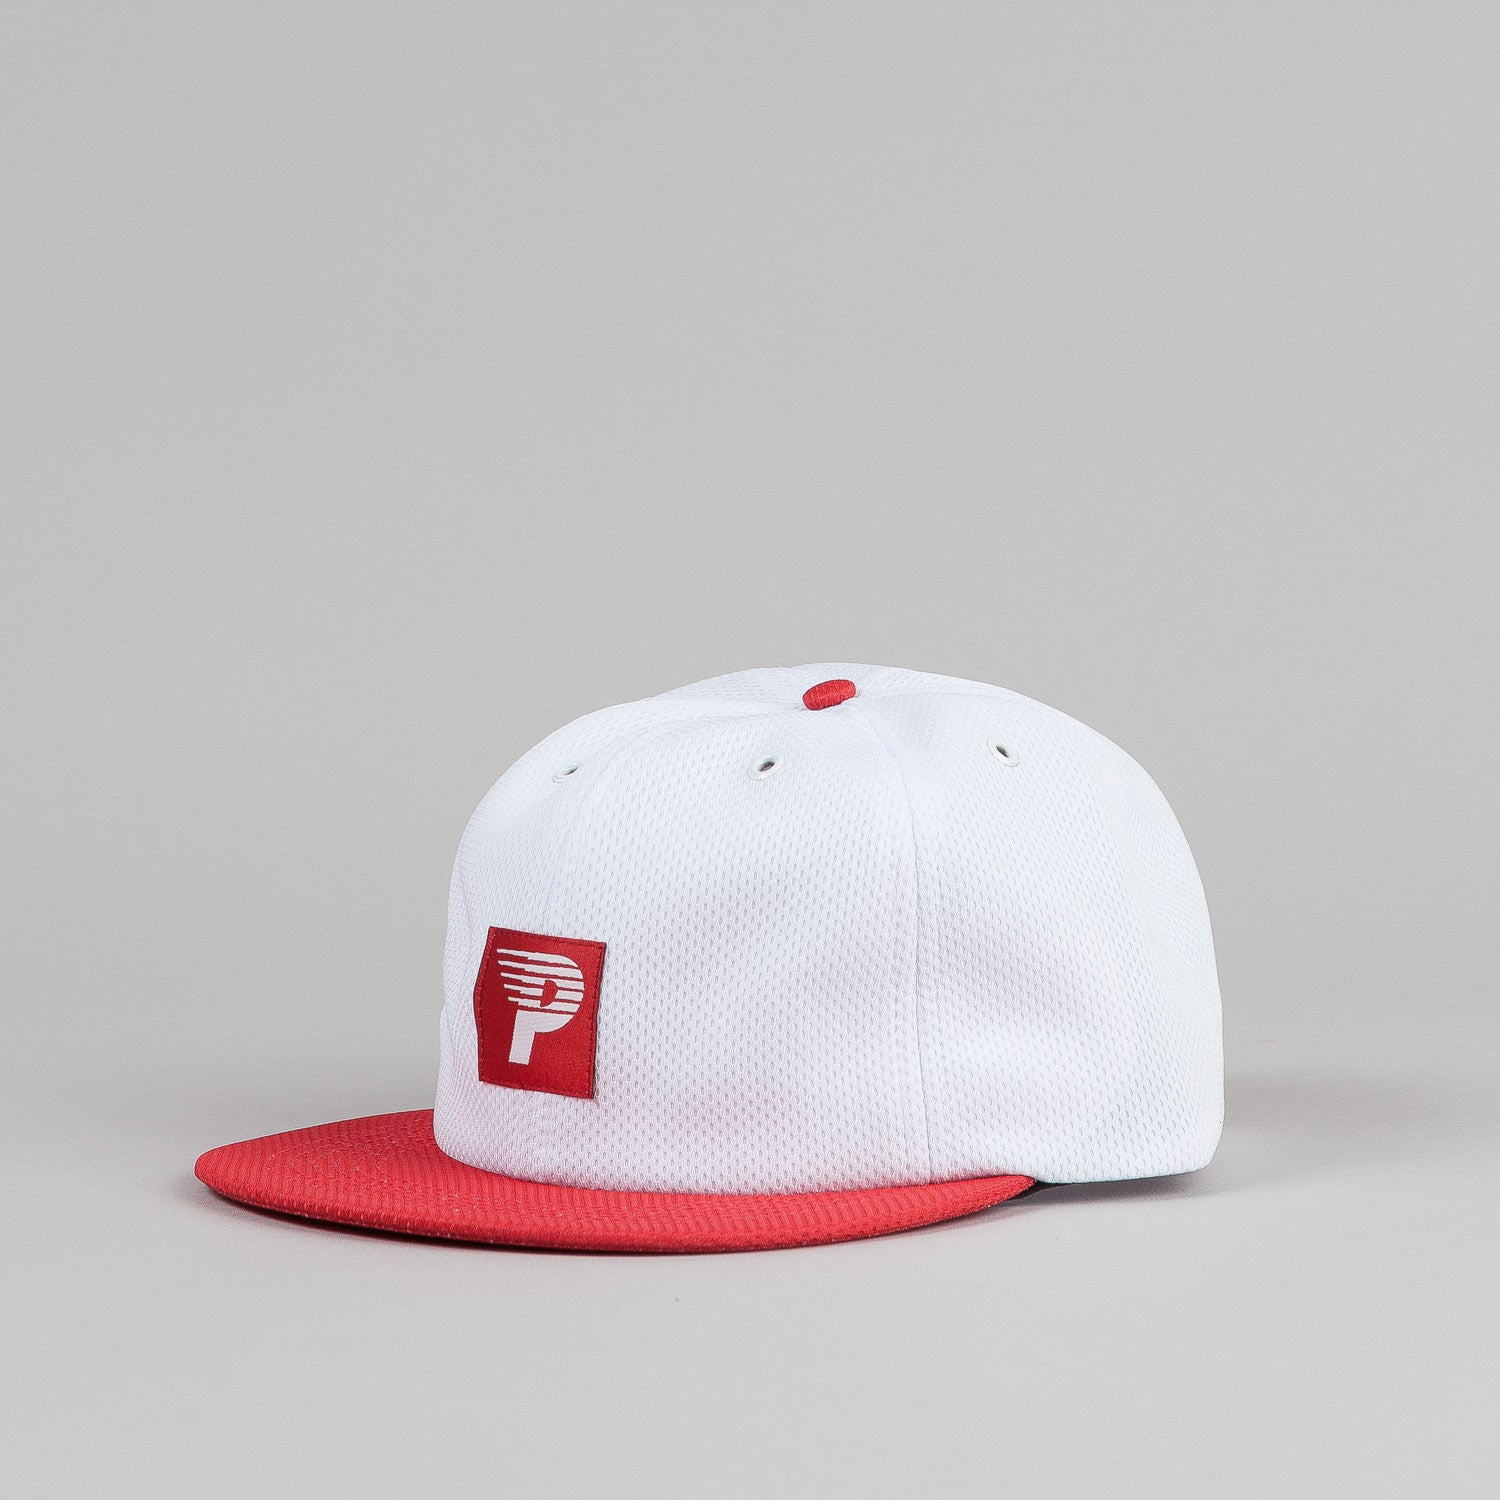 Polar Speedy P Mesh Cap White / Red